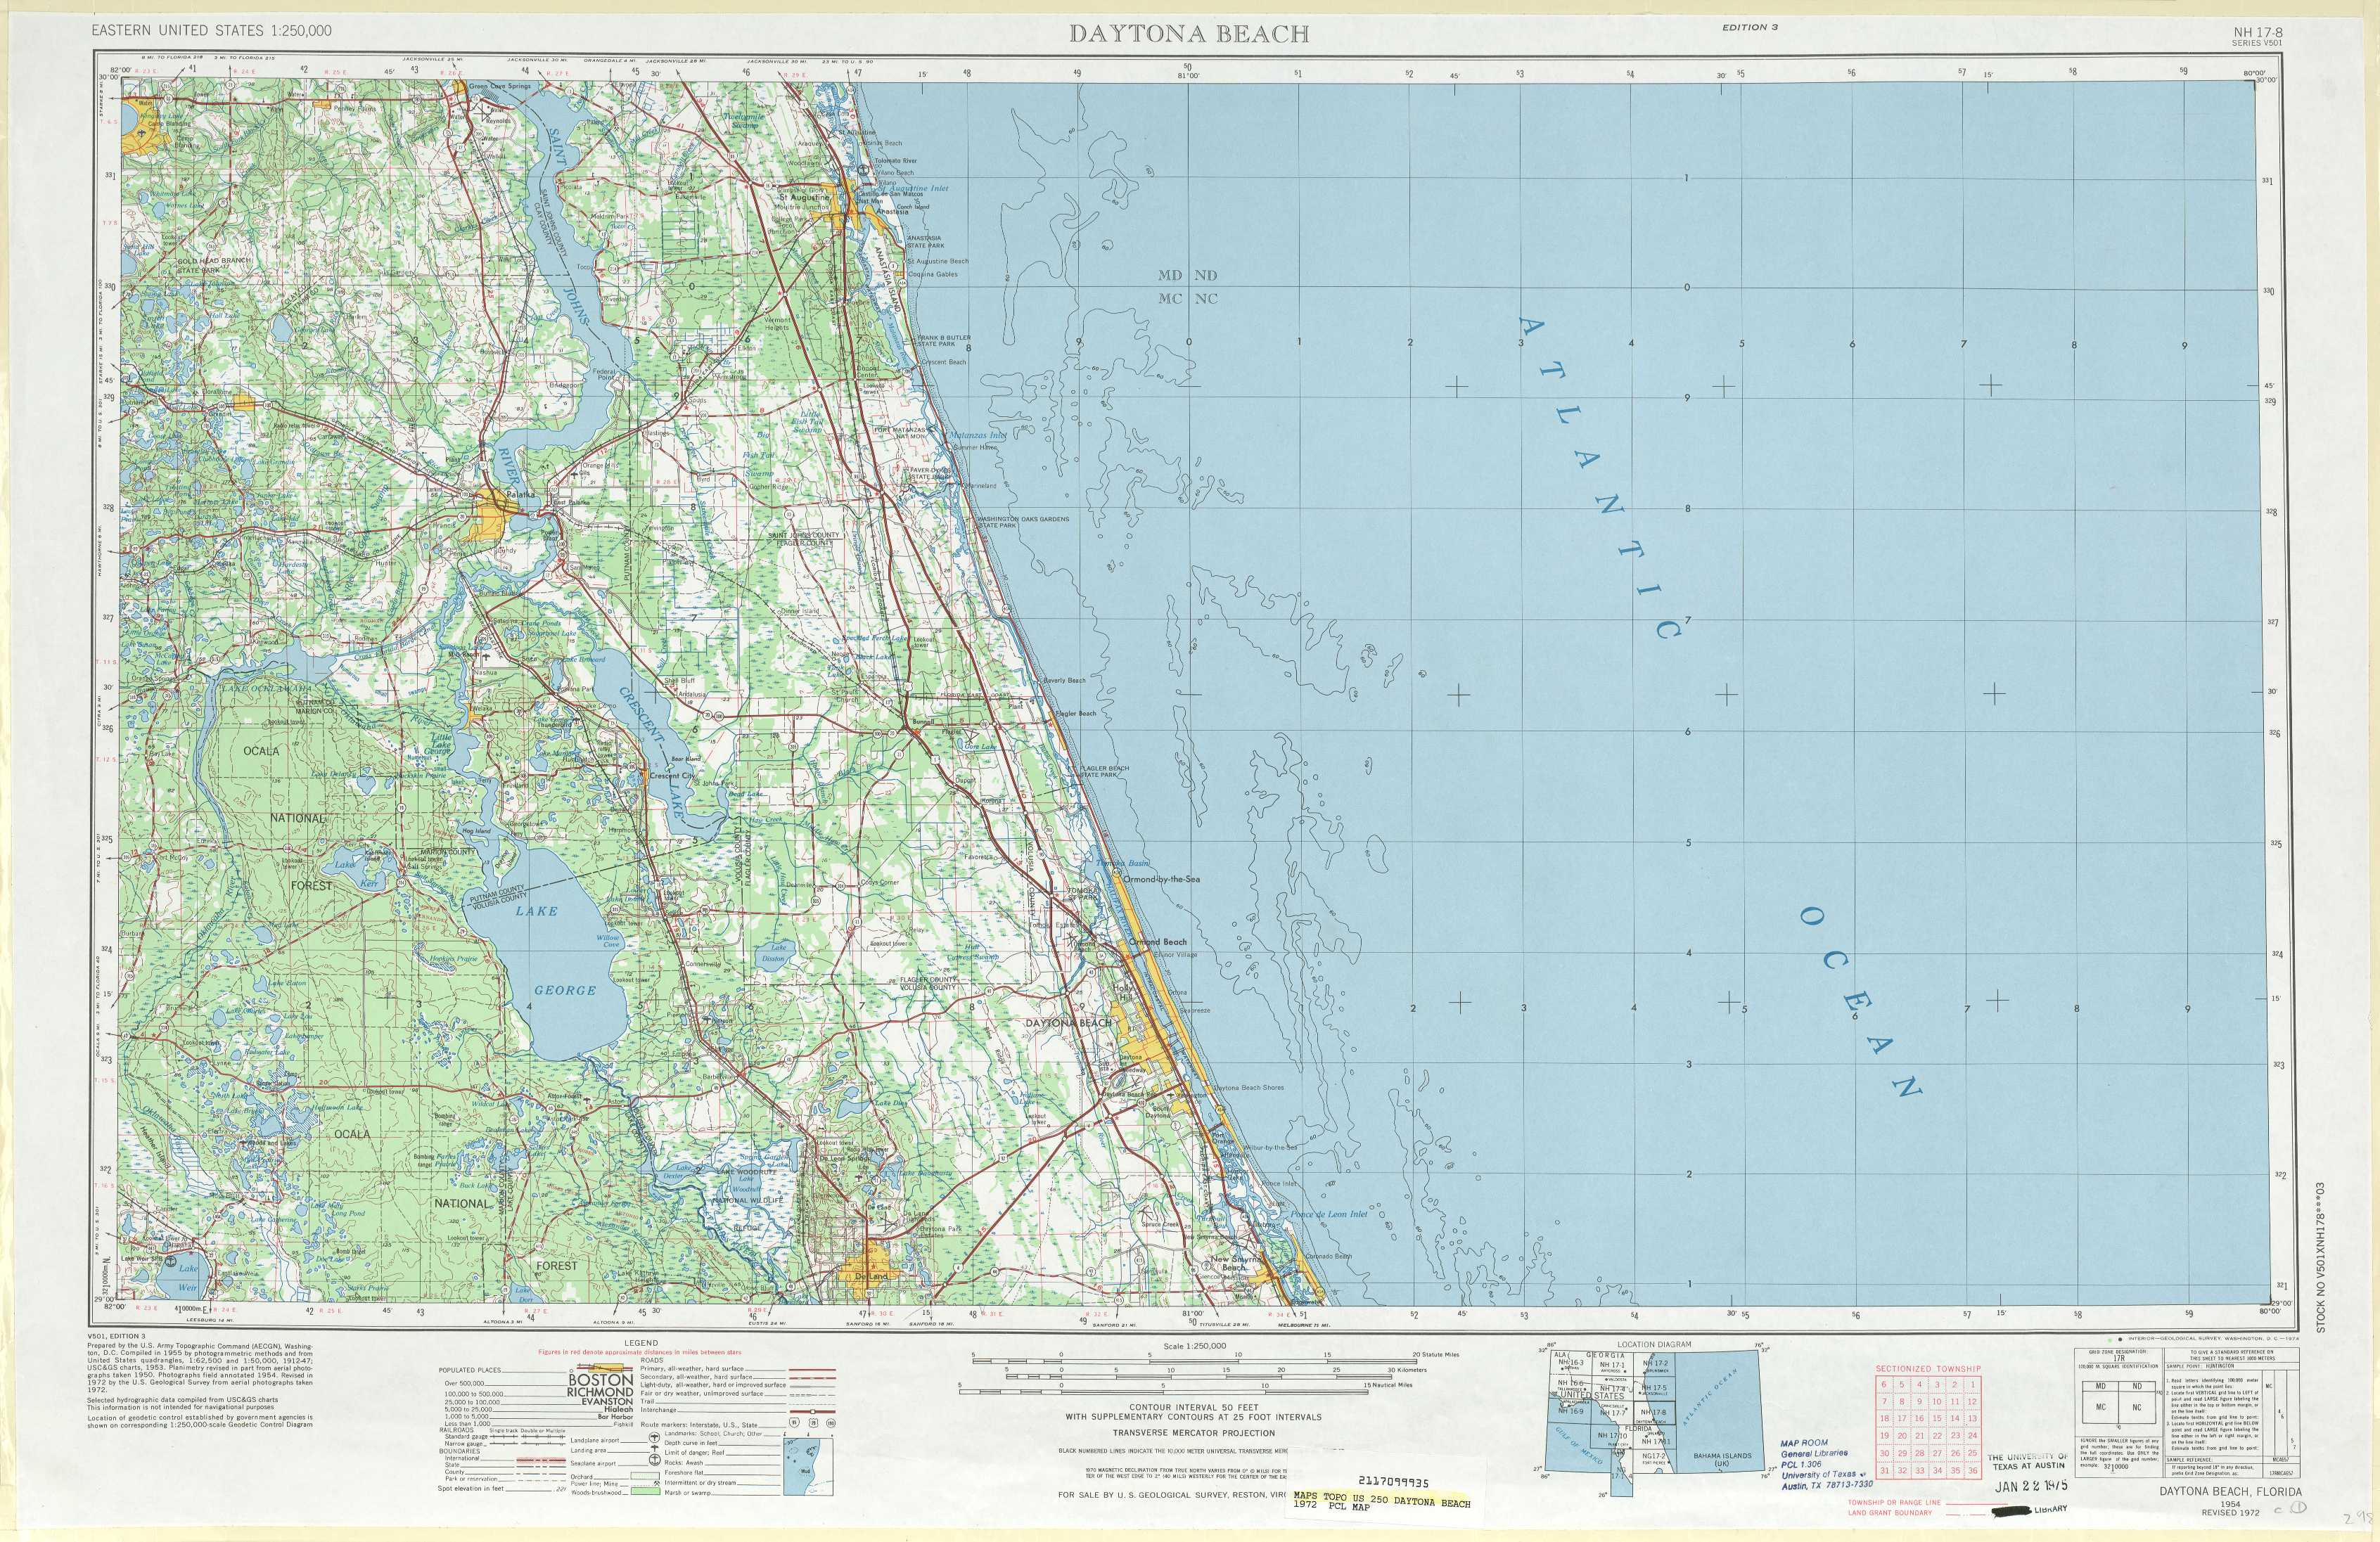 Daytona Beach topographic maps, FL - USGS Topo Quad 29080a1 at 1 ...